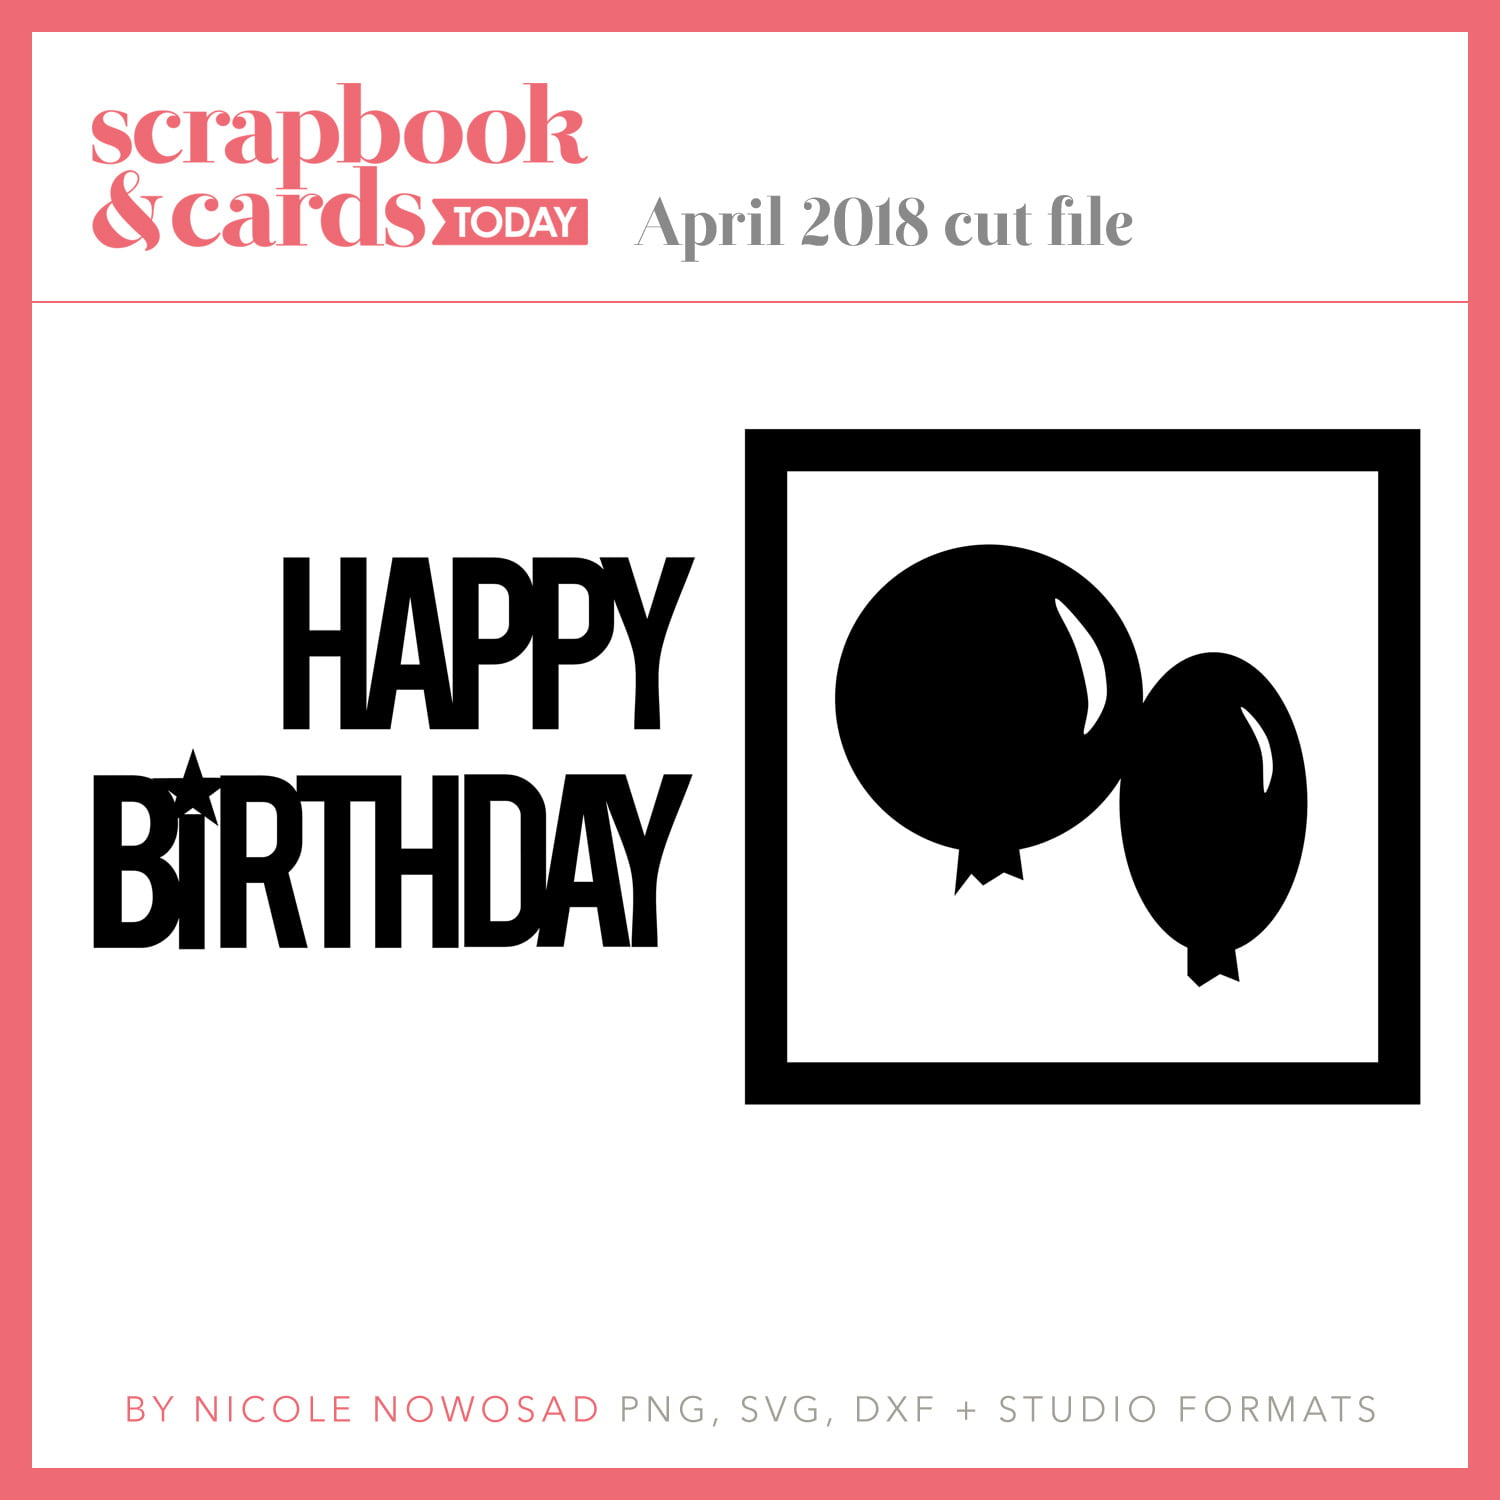 April free cut file for Scrapbook & Cards Today magazine